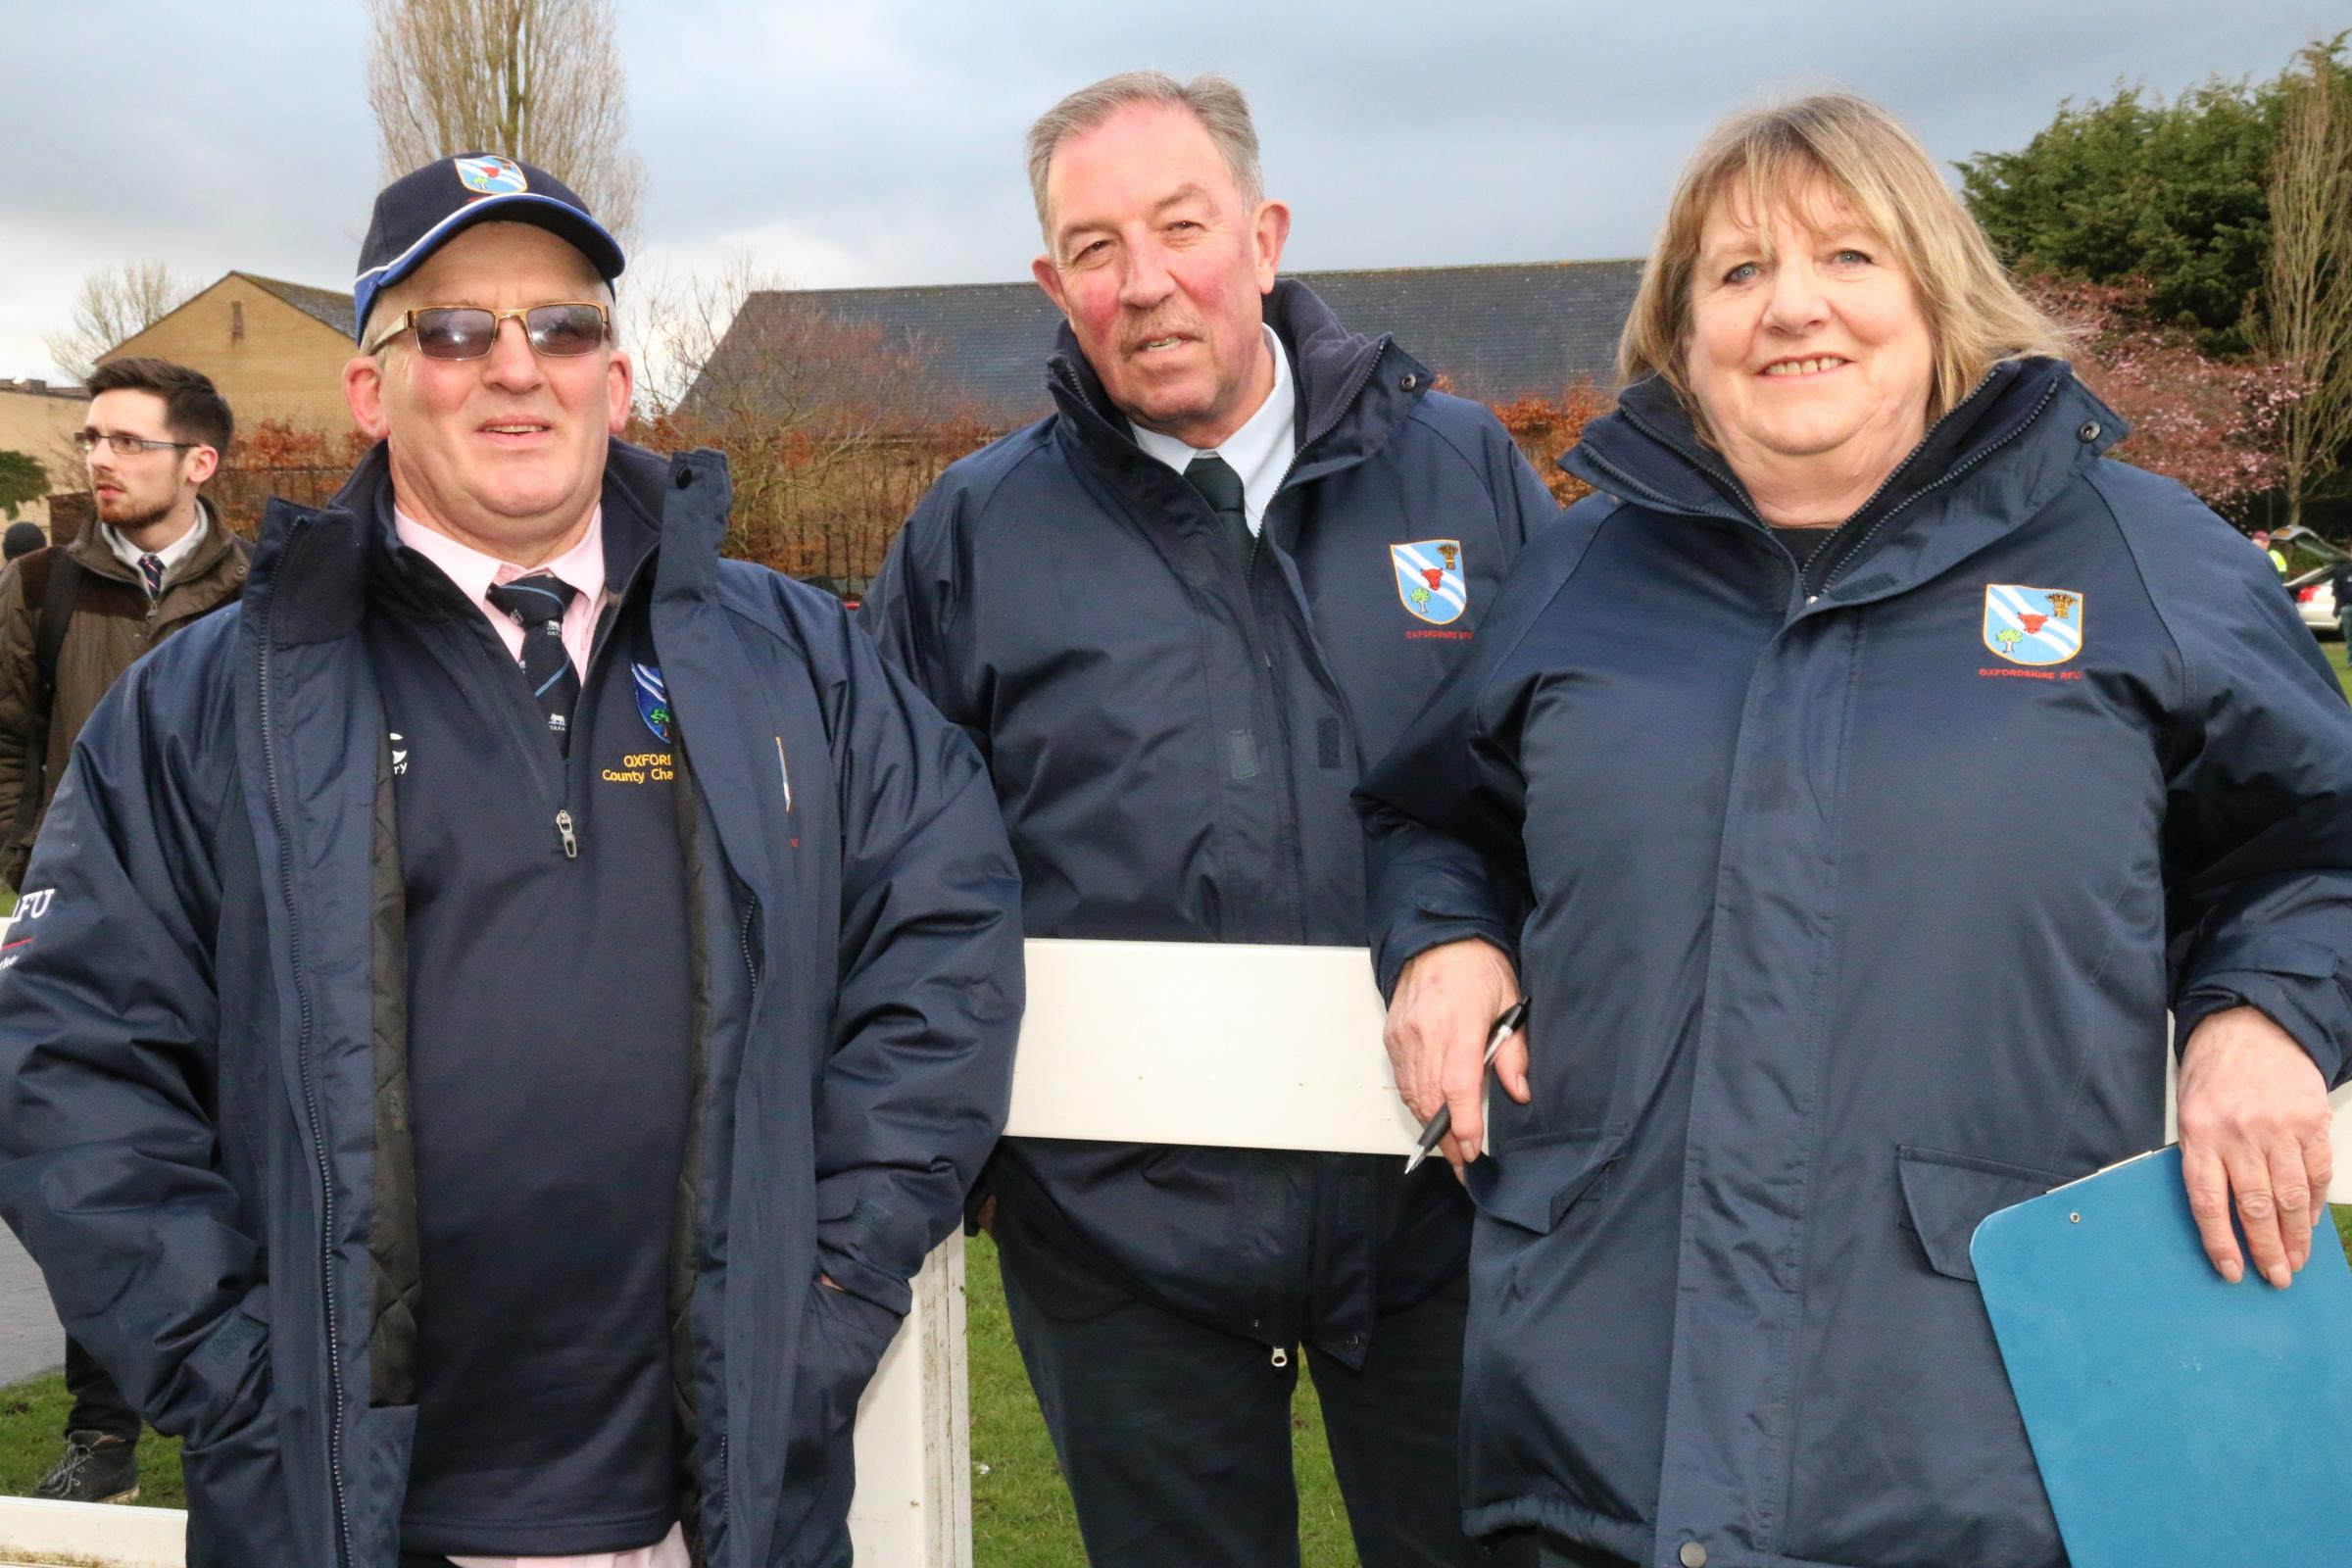 HONOUR: Oxfordshire RFU's new president Jenny Bosley (right) with husband and chair of representative rugby Doug Bosley (left) and outgoing president Rob Walsh Picture: Simon Grieve